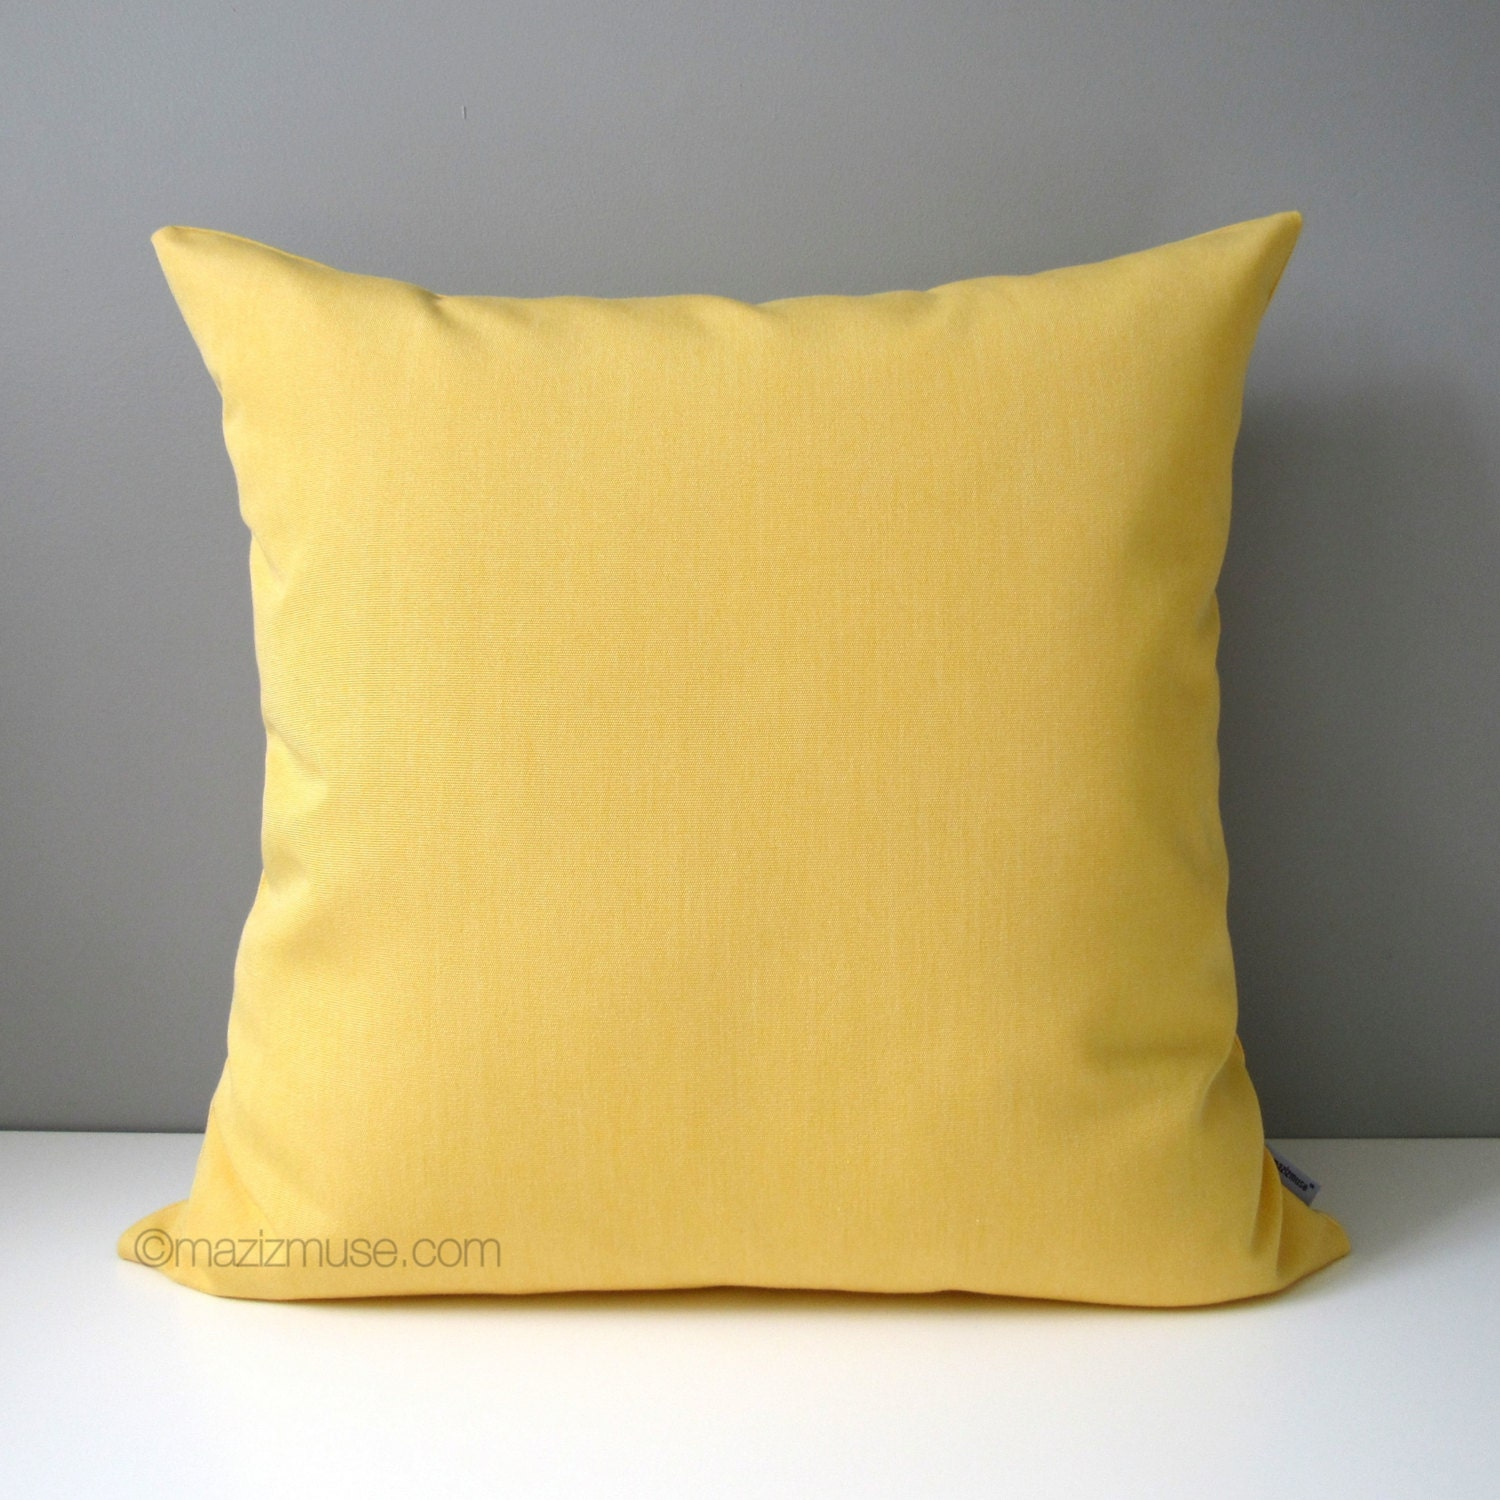 Pale Yellow Throw Pillow Cover : Pale Yellow Throw Pillow Cover ~ Wanker for